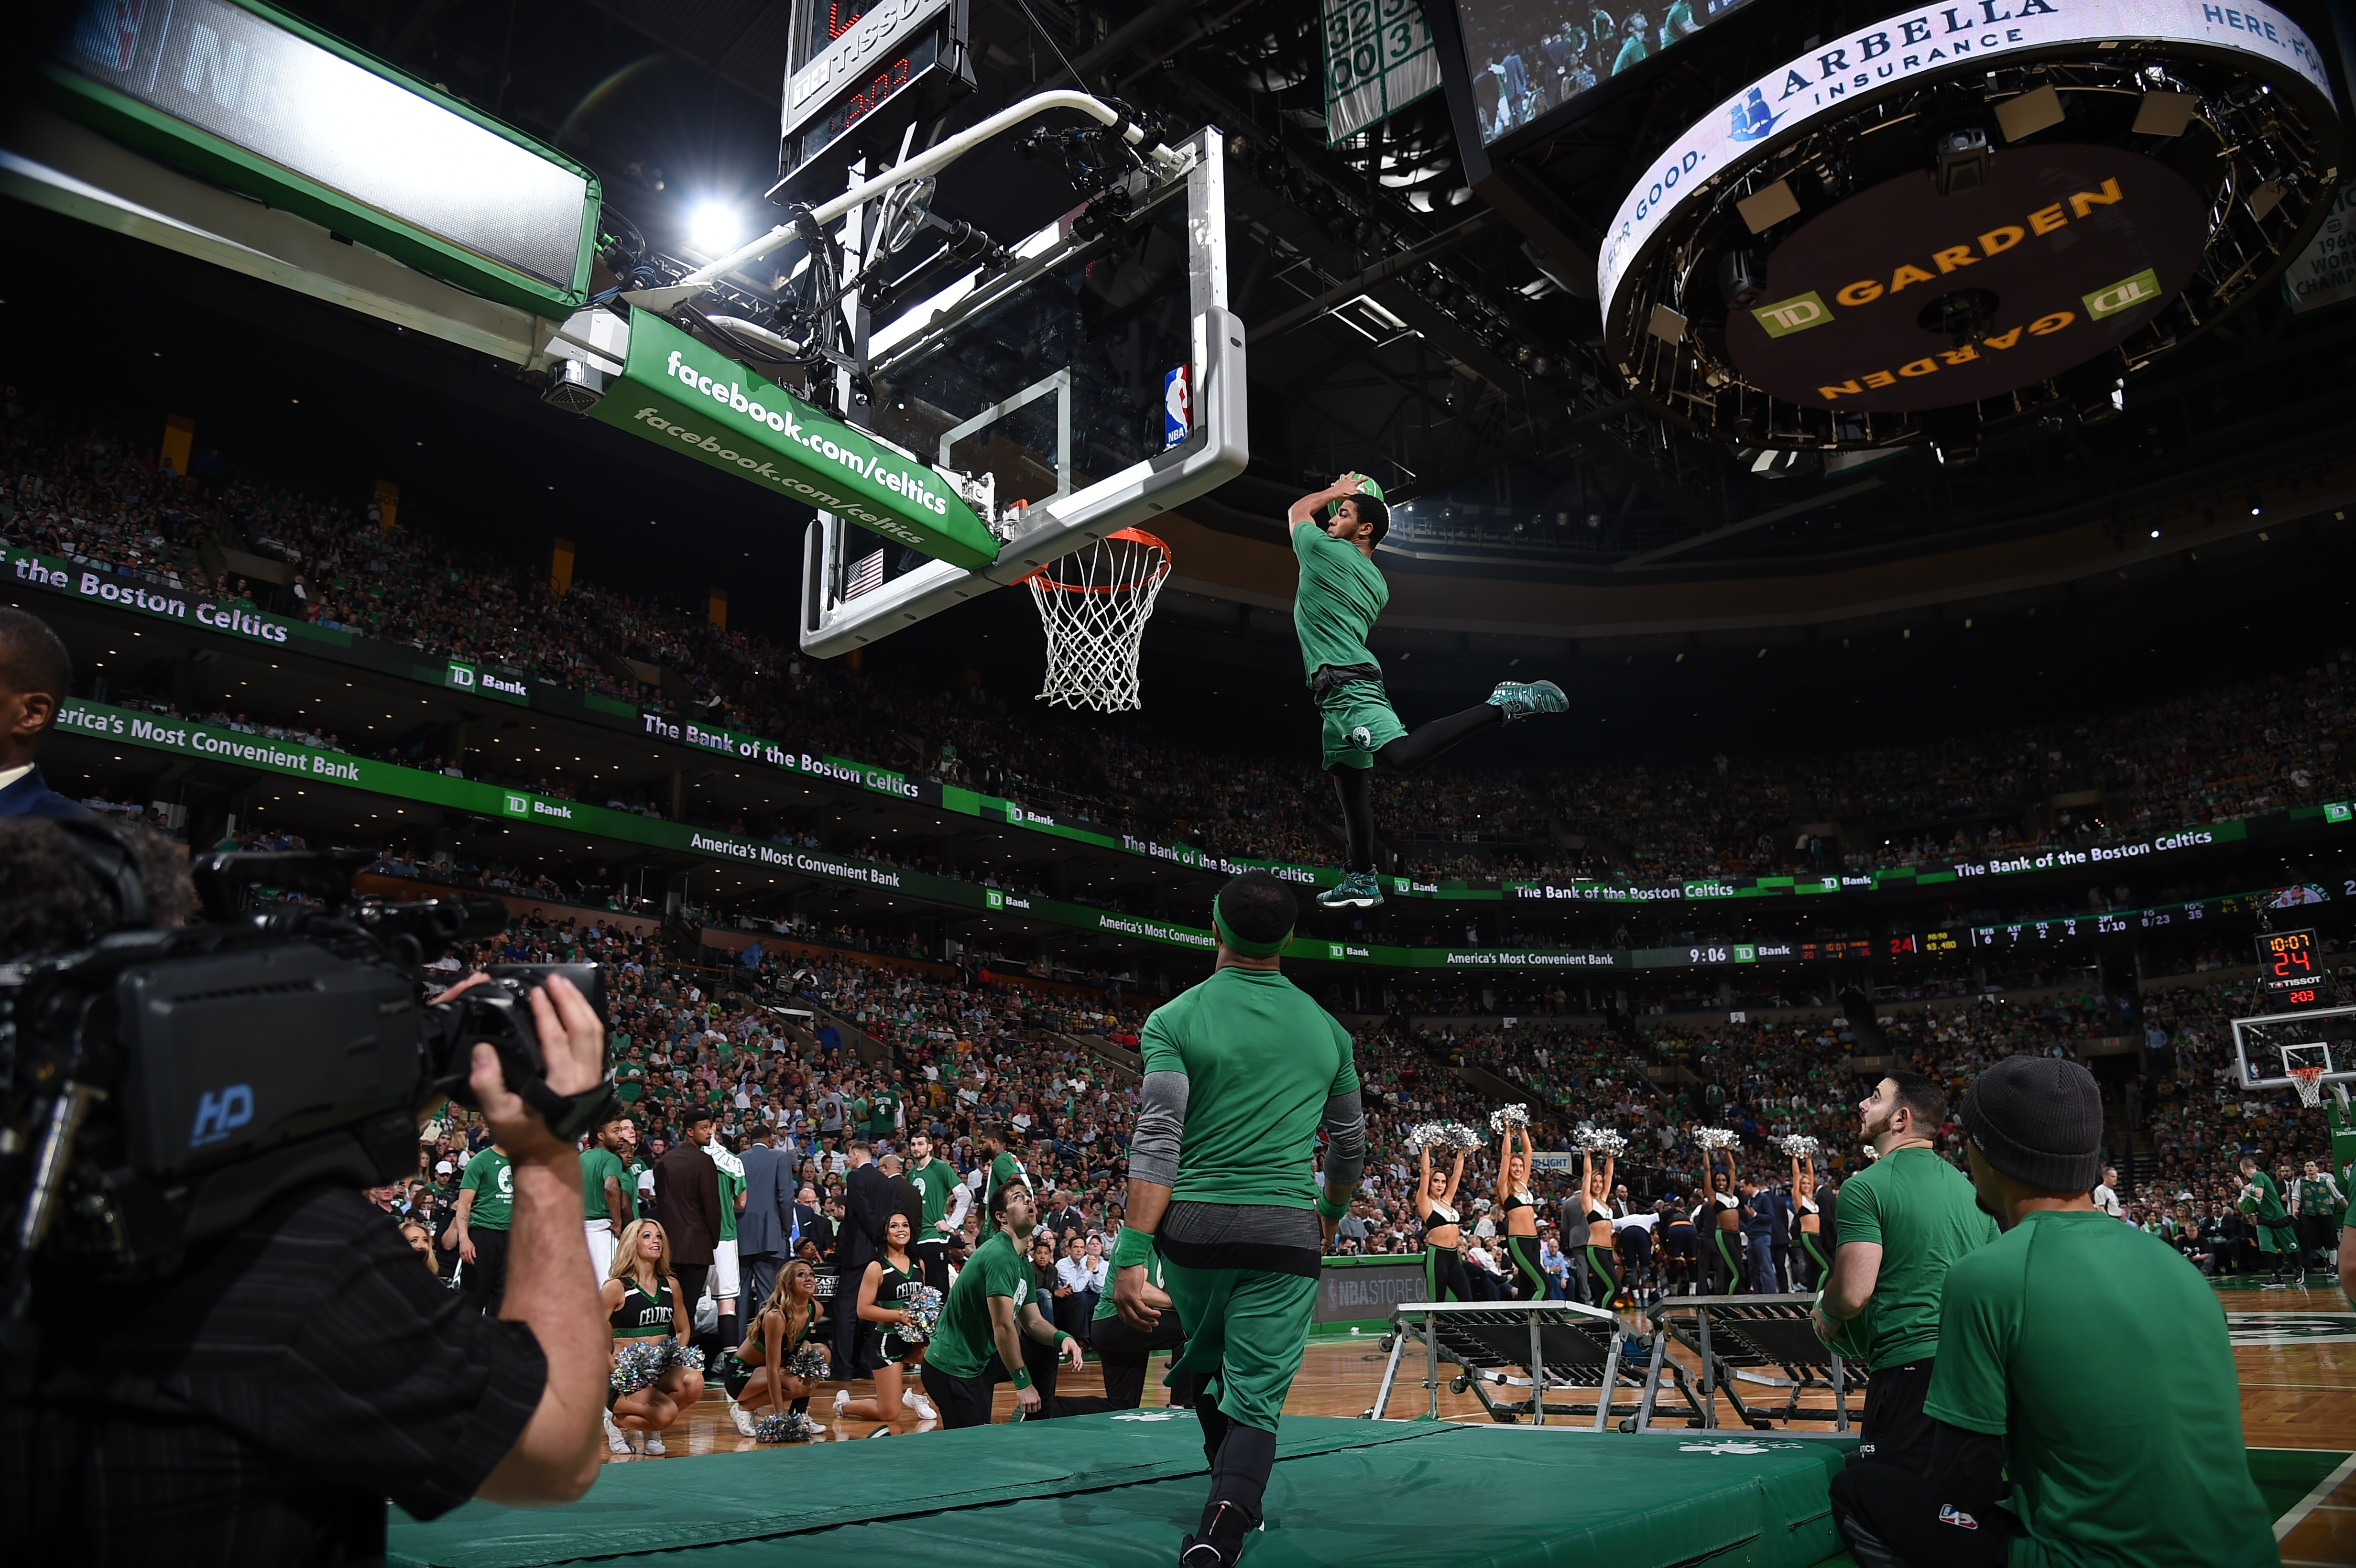 2016 17 celtics dunk team boston celtics